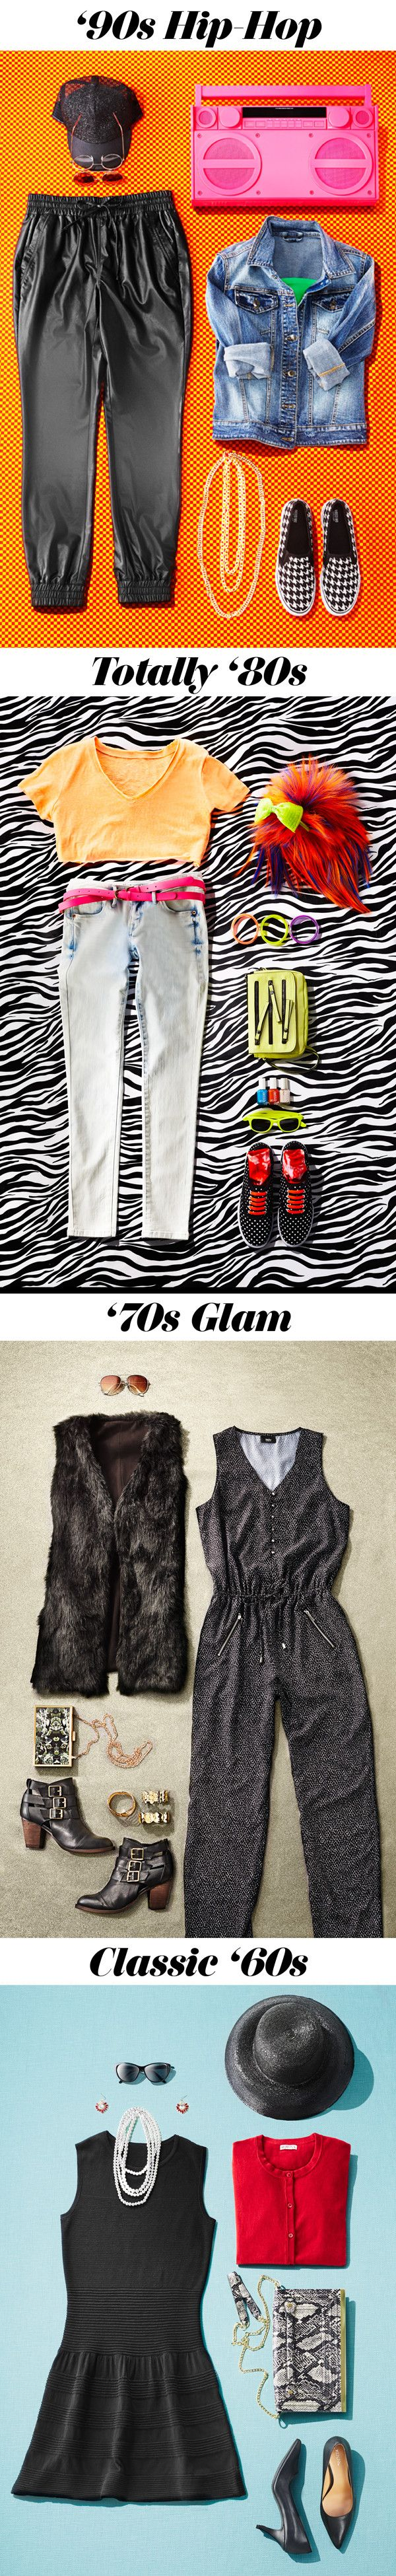 These throwback ideas are perfect Halloween costume inspo and won't take a ton of time to whip up. Bonus: they're some of the smartest purchases you can make—each costume includes some seriously cool (and definitely wearable!) pieces you'll want to rock long after the party ends.